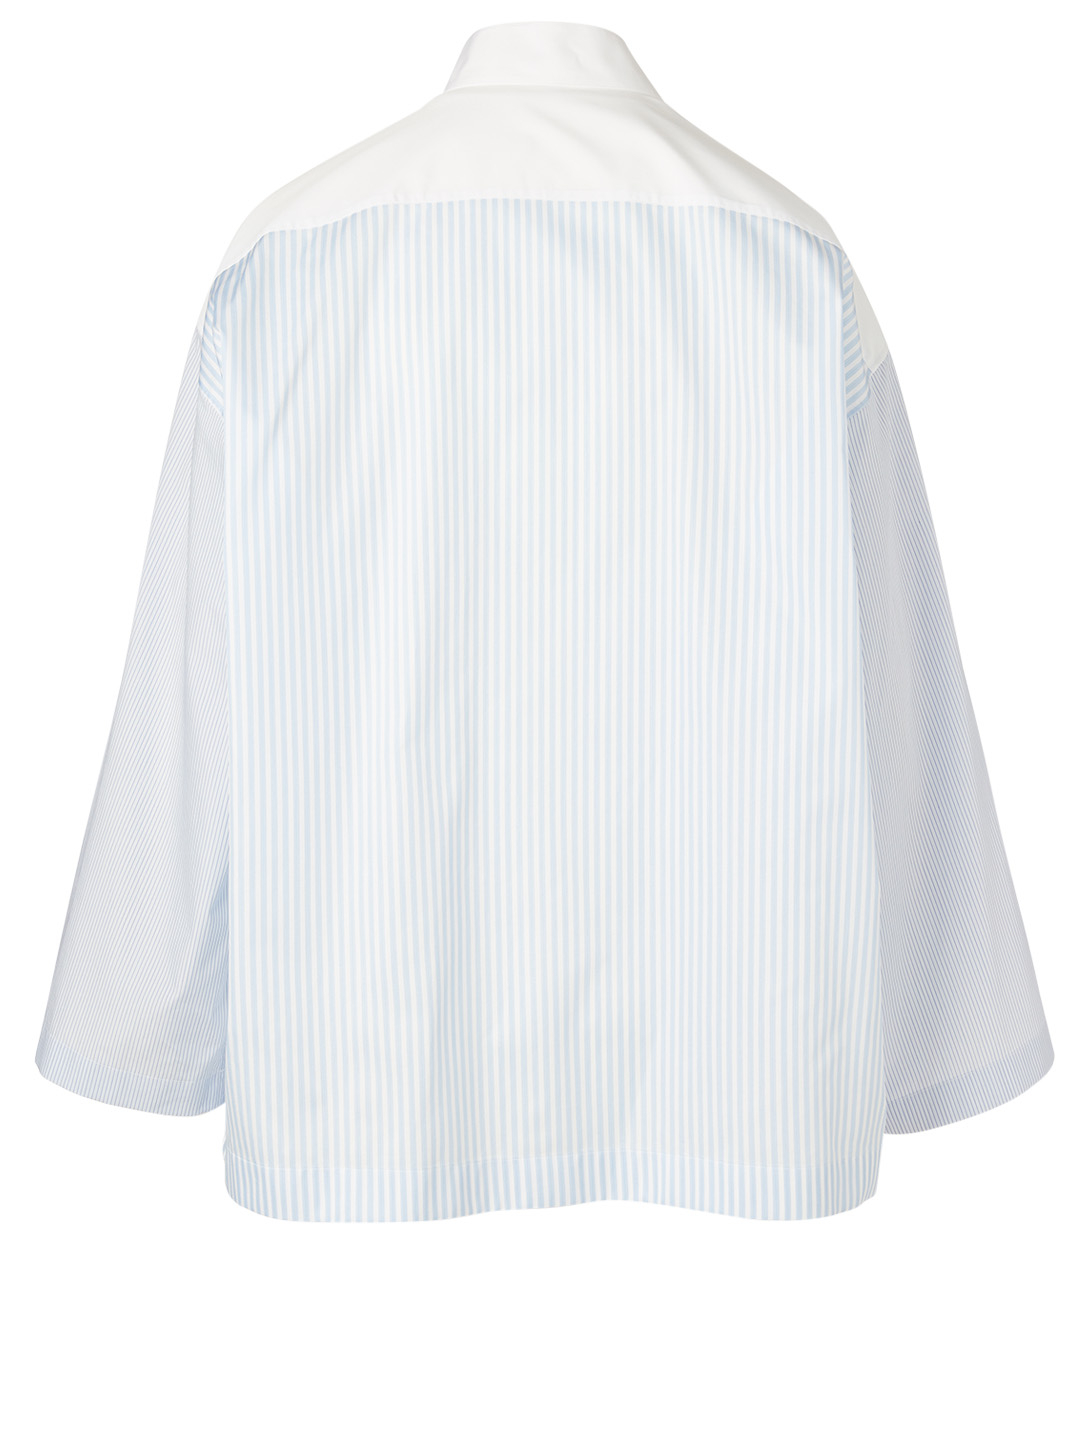 LOEWE Cotton Oversized Shirt Women's White